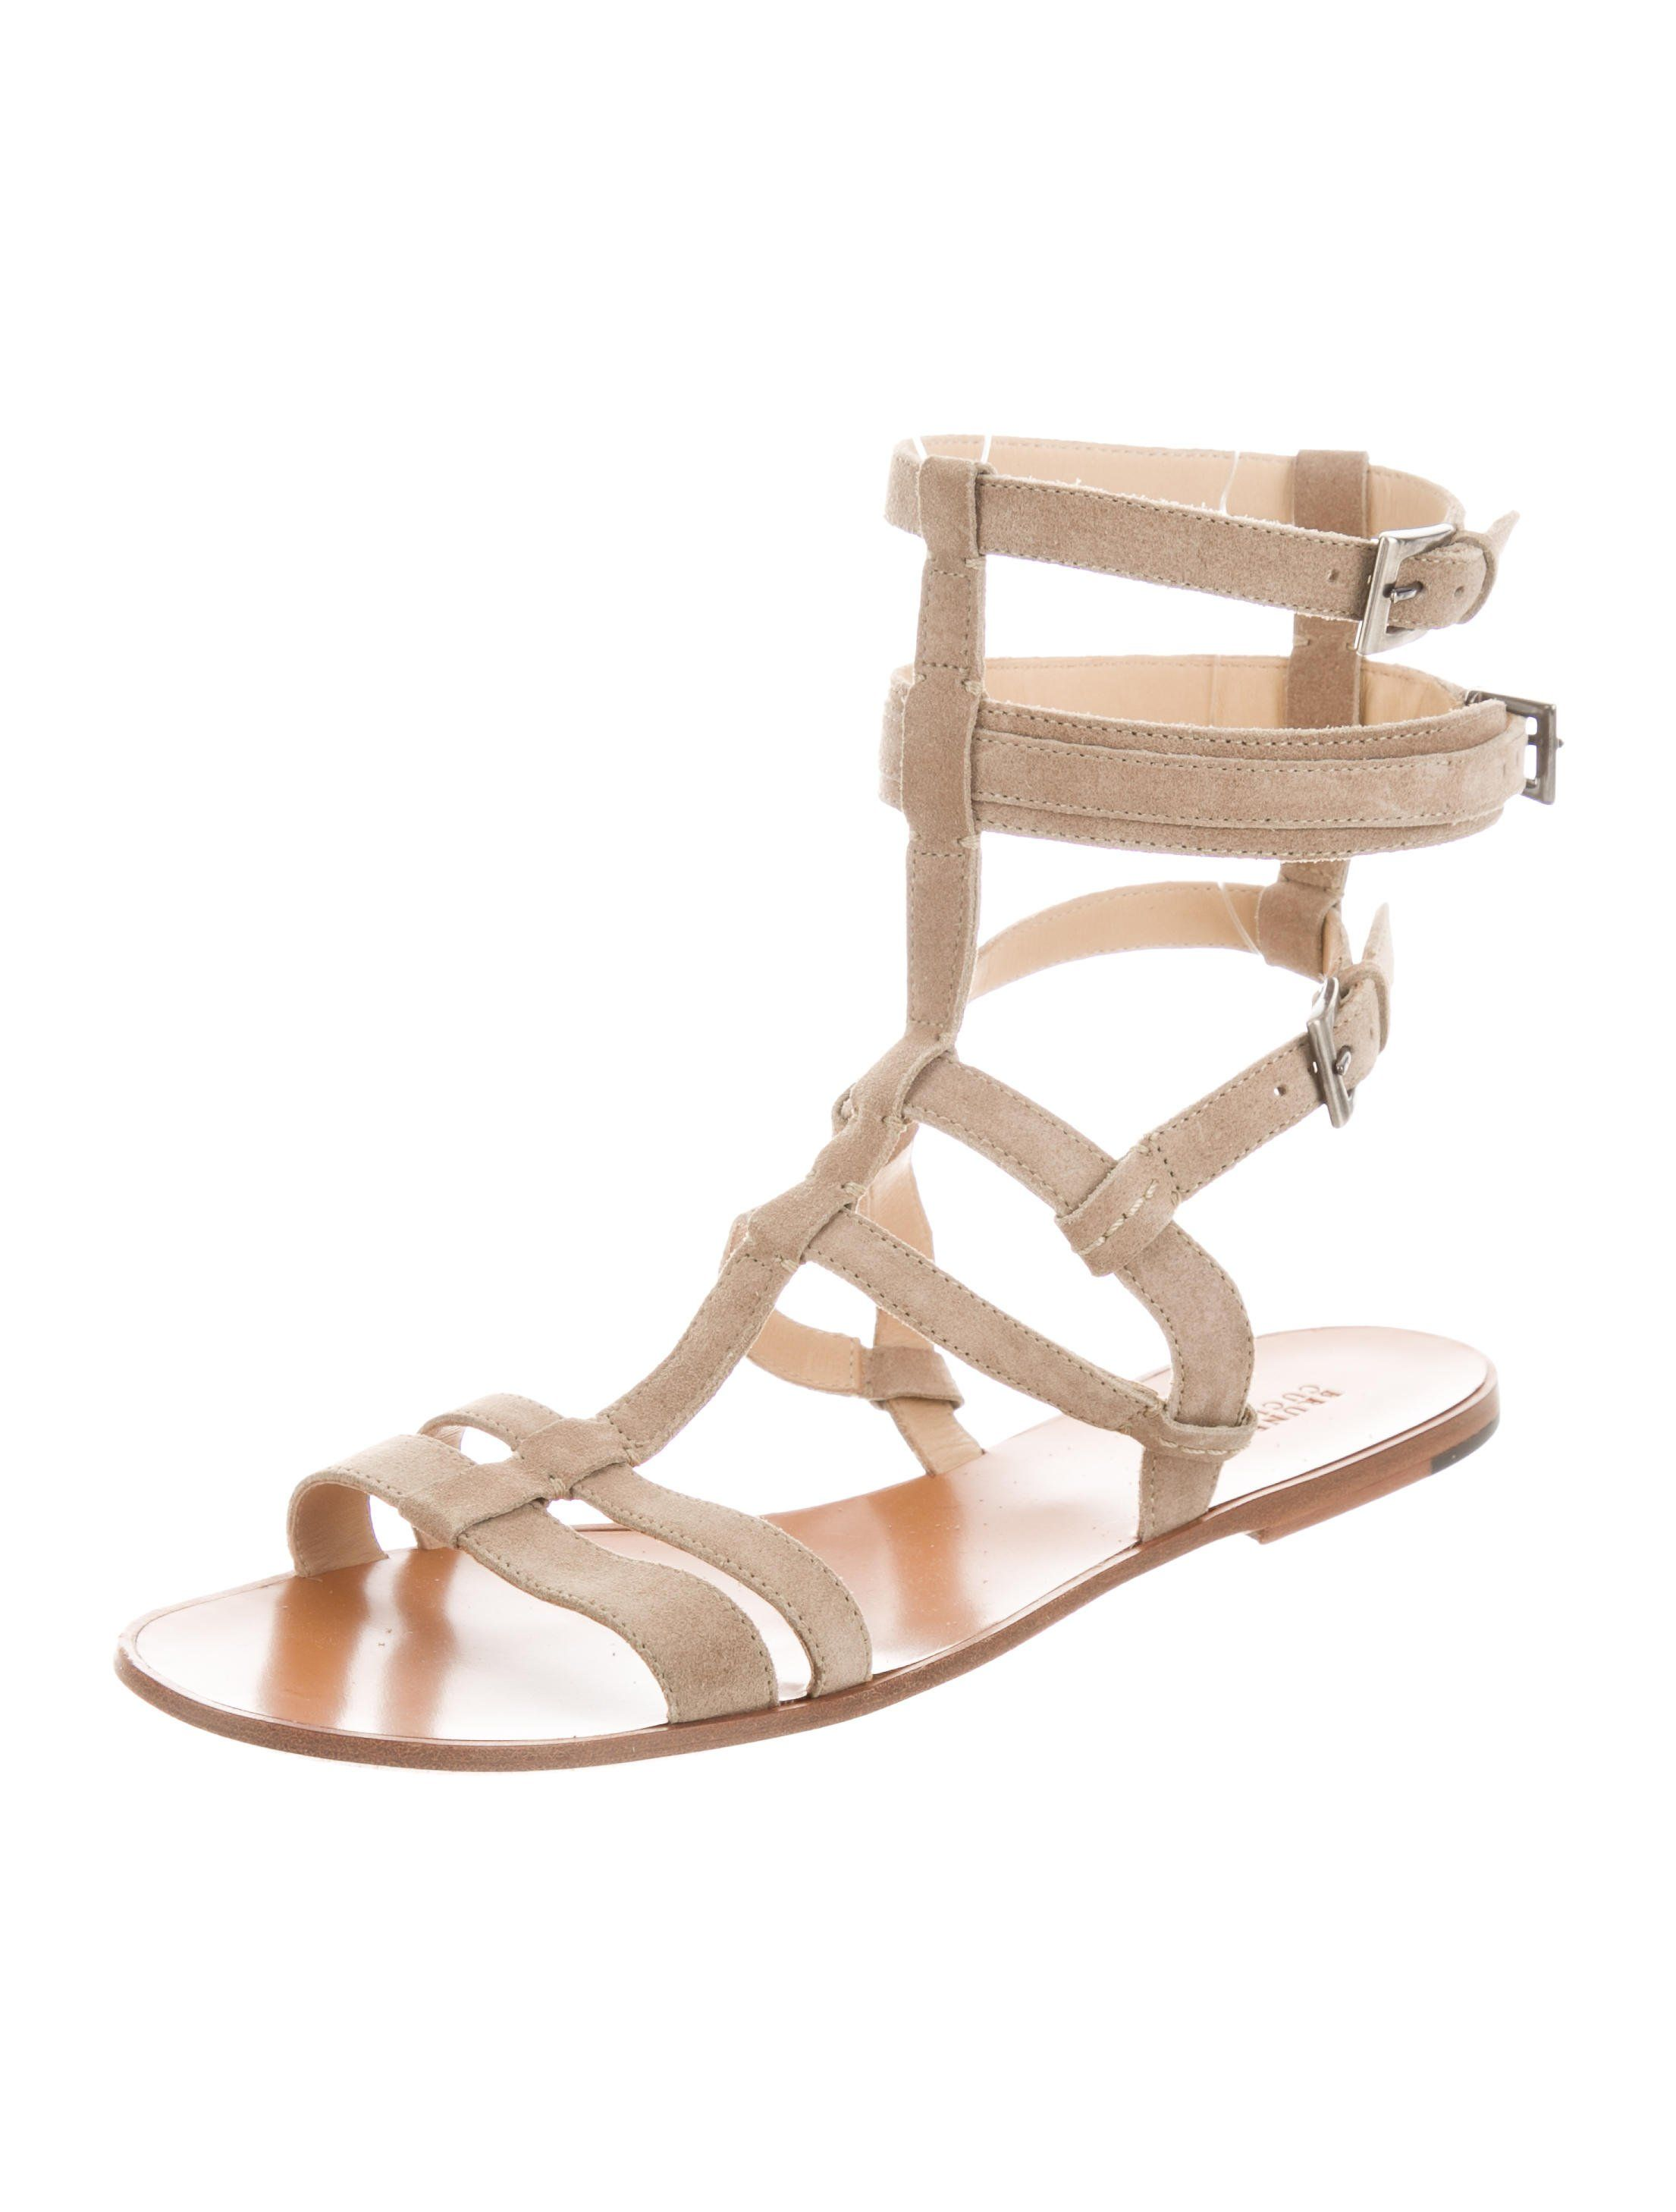 8fa44b9637f5 Beige suede Brunello Cucinelli multistrap sandals with tonal stitching  throughout